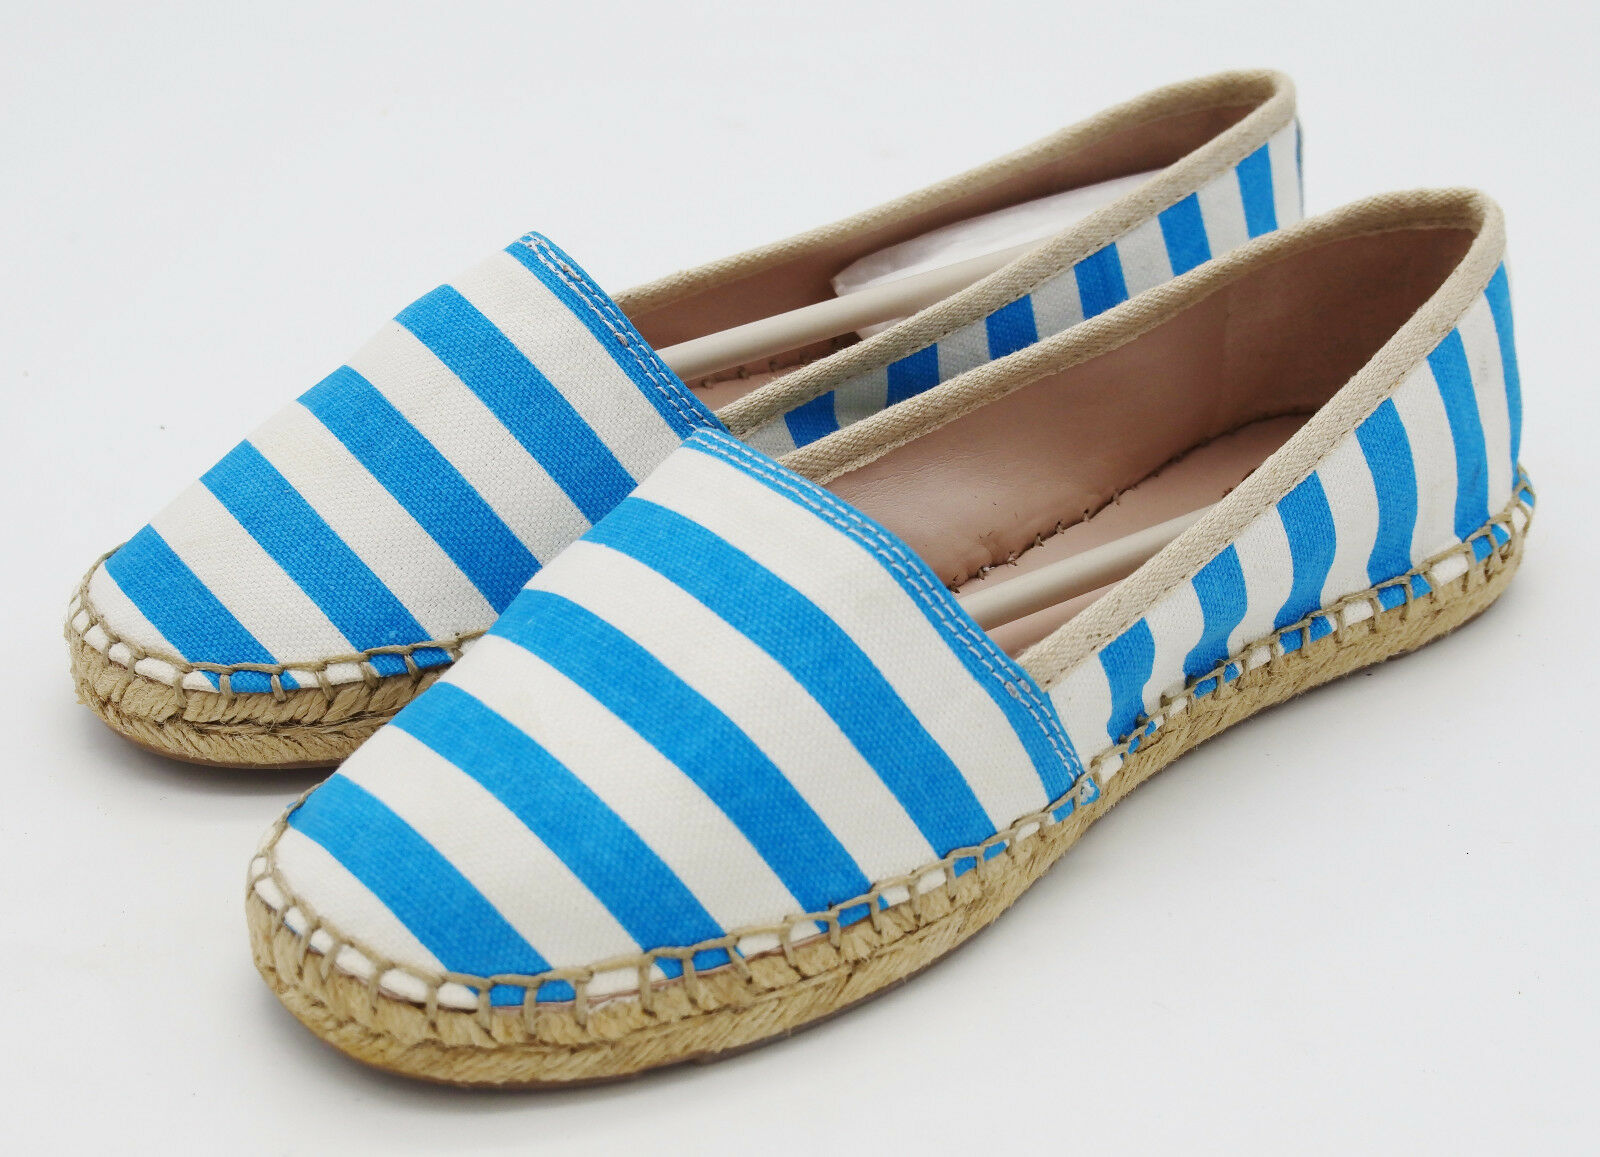 J5026 New Women's Vince Camuto Johnnie Riveria bluee White Espadrille Loafer 7.5M